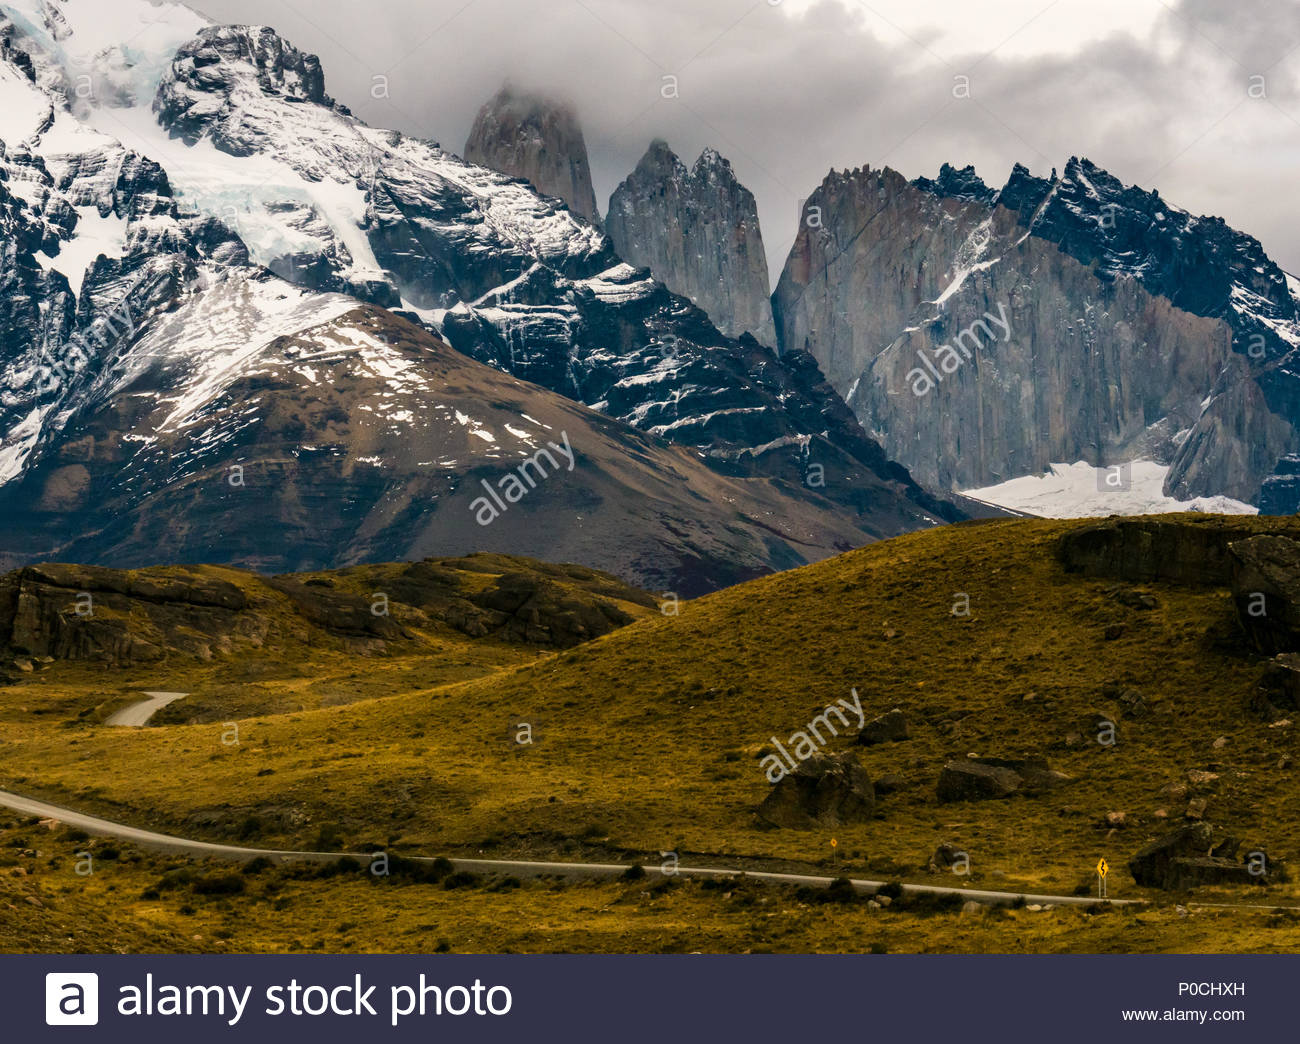 Granite Towers of Paine, Torres del Paine National Park, Patagonia, Chile, South America showing intrusion - Stock Image